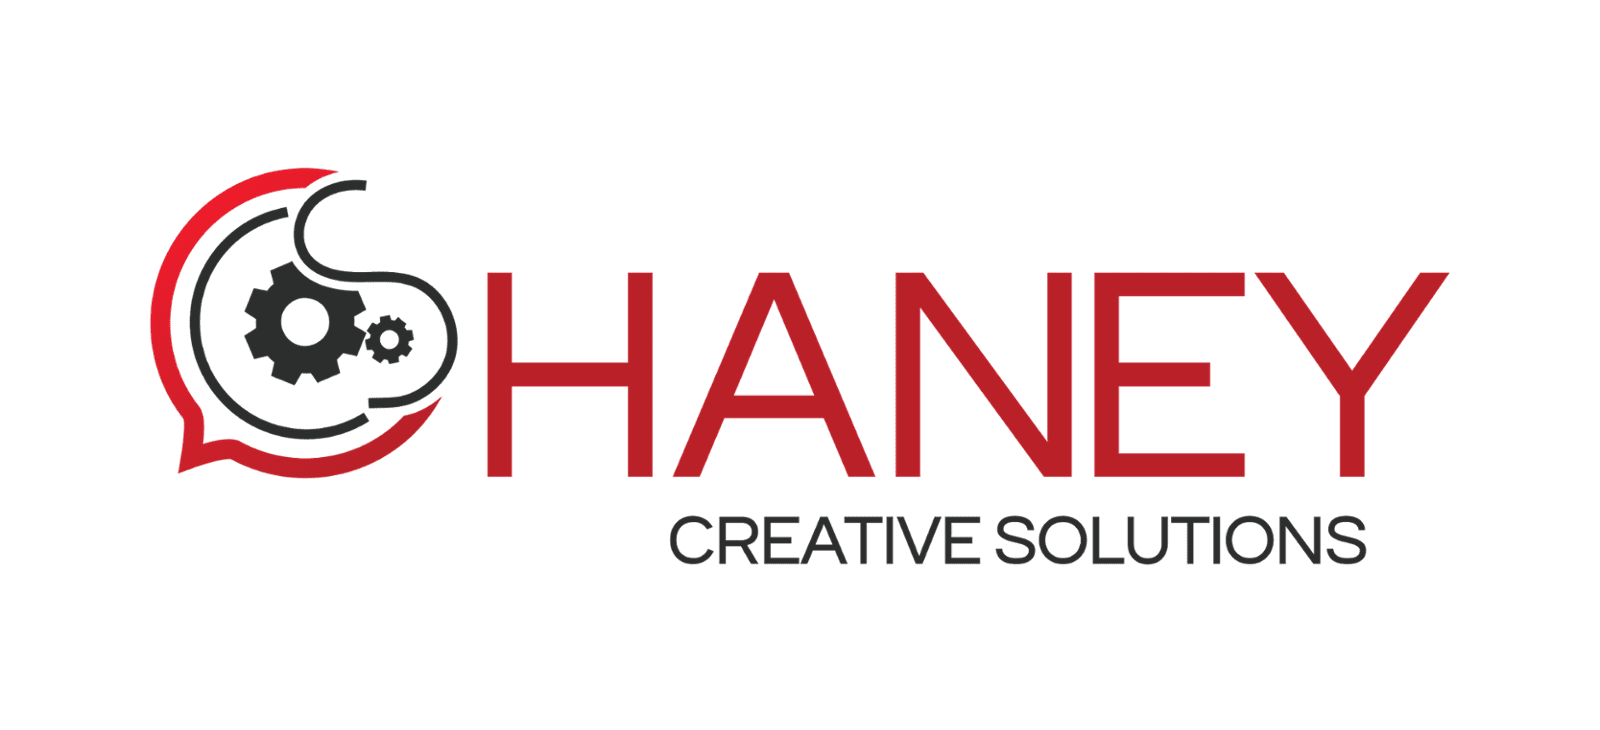 Chaney Creative Solutions